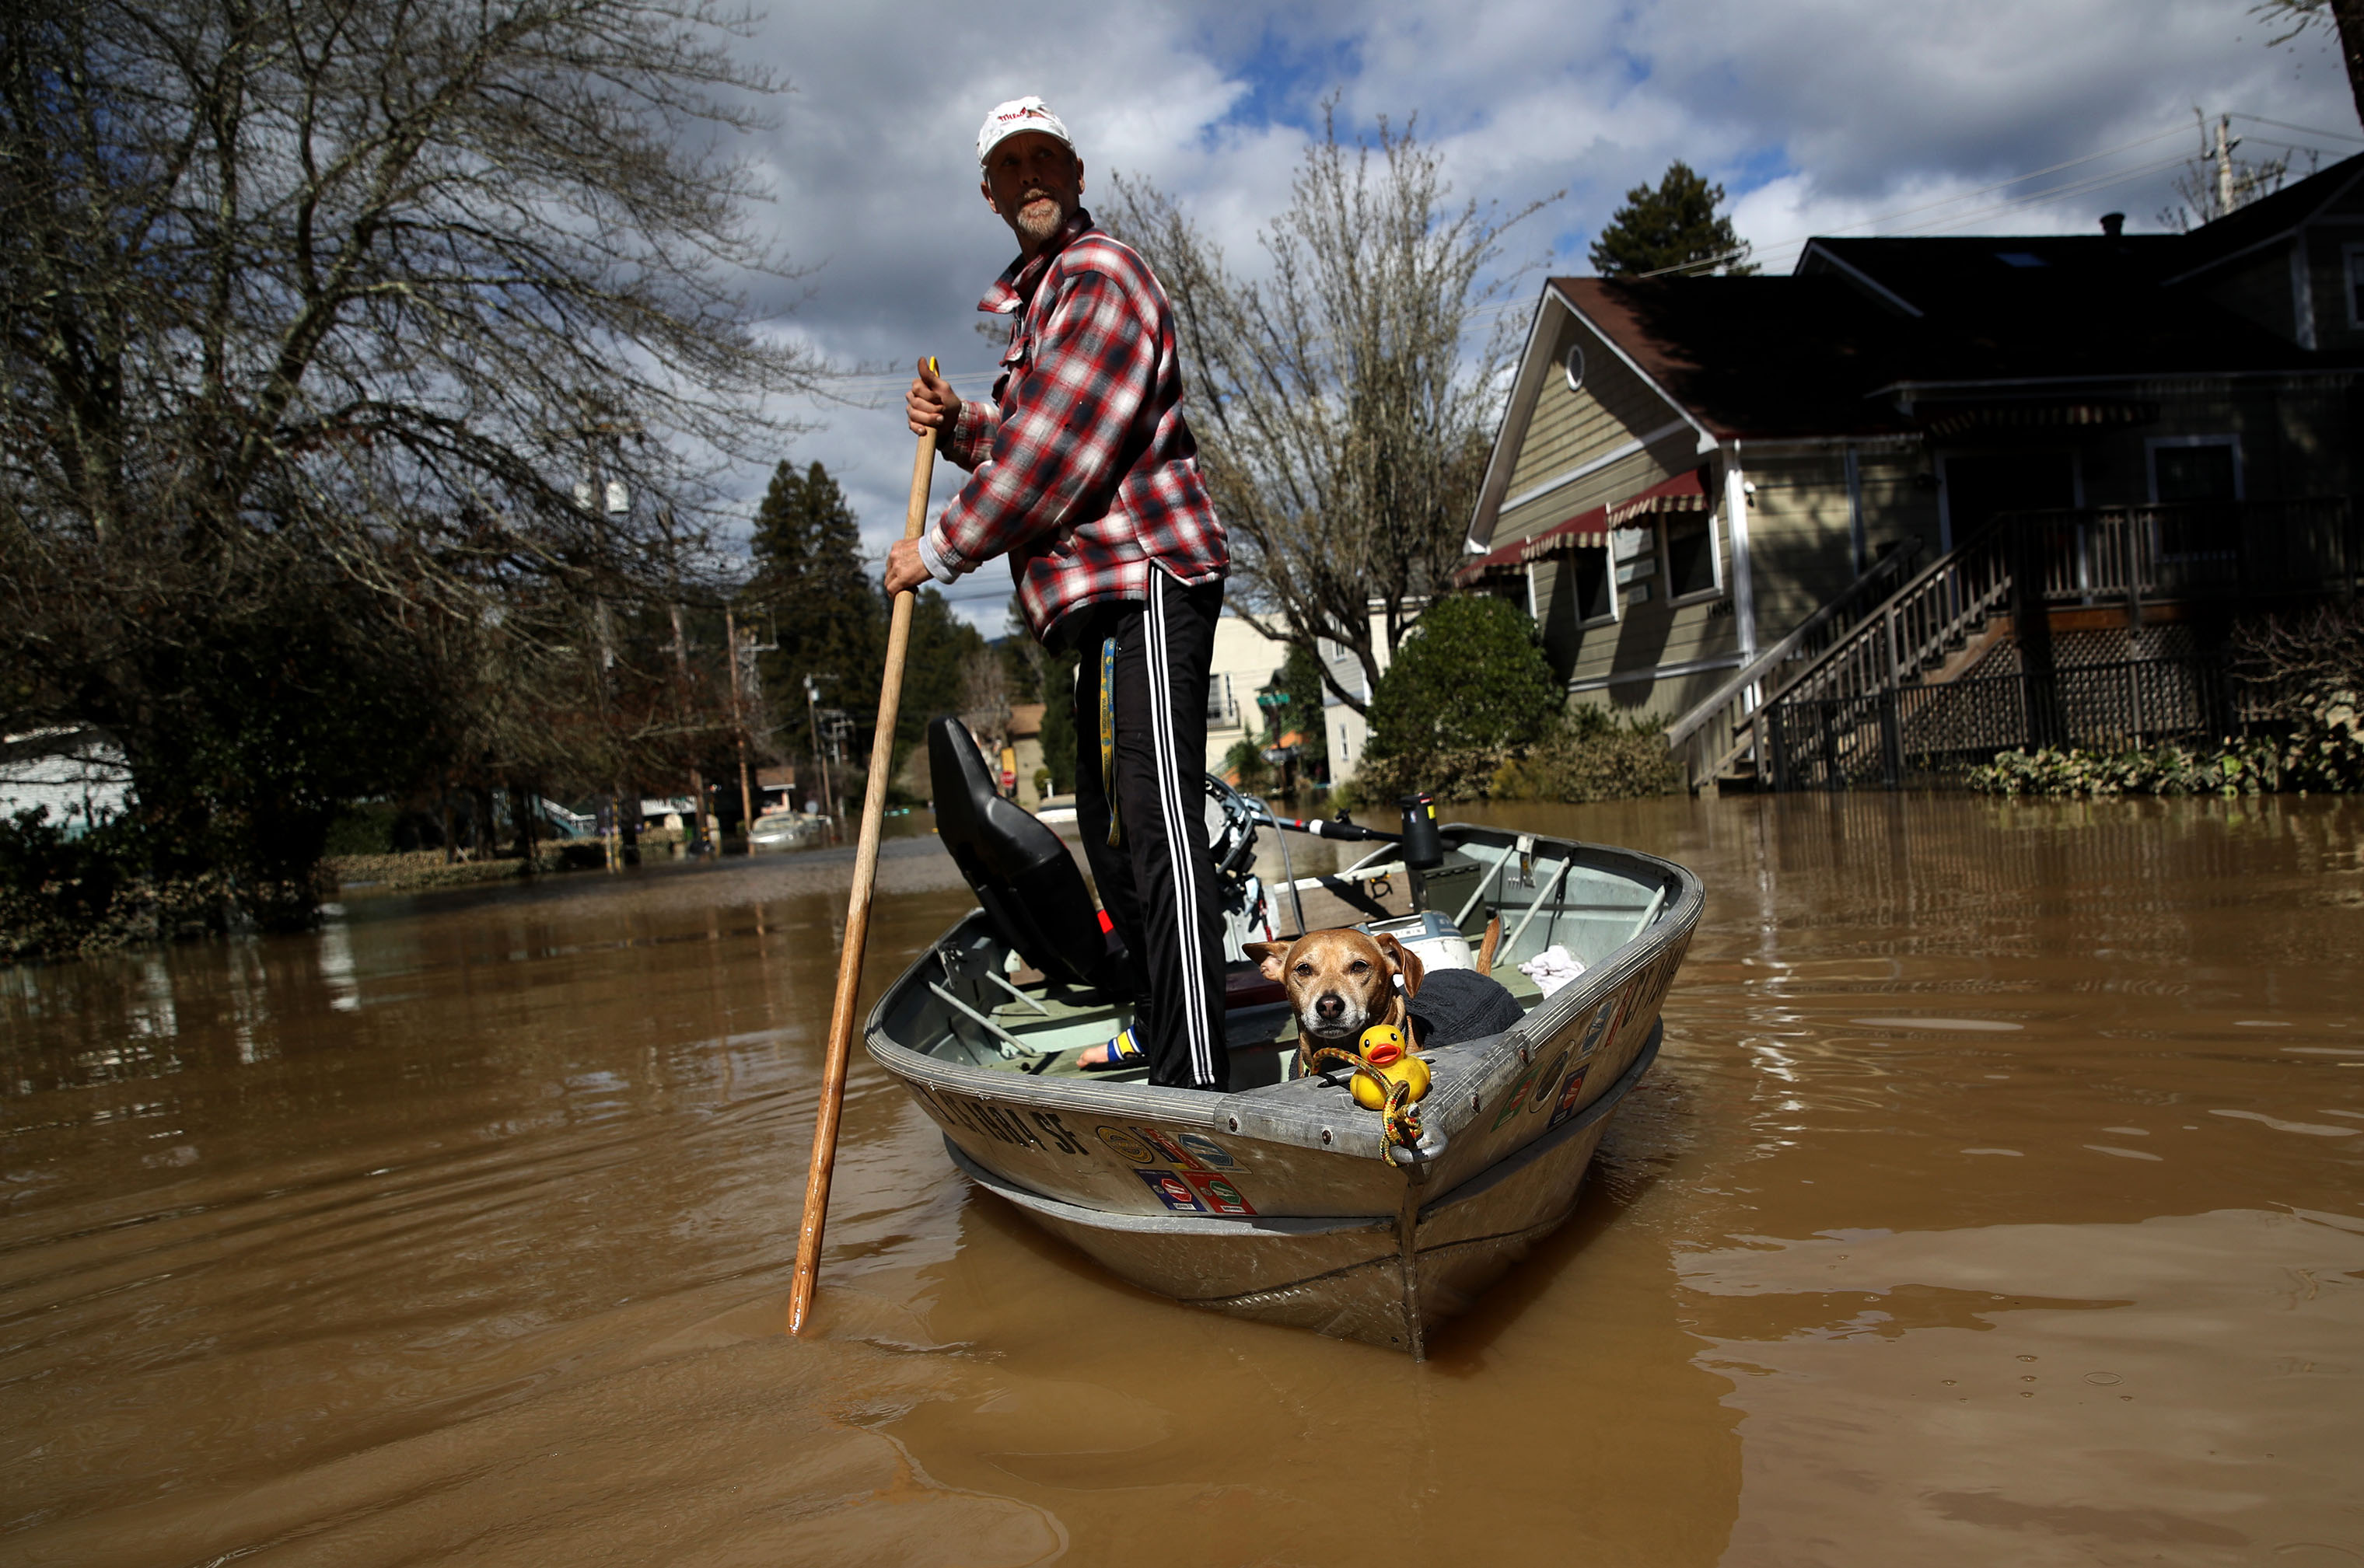 A resident and his dog navigate through a flooded neighborhood on Feb. 28, 2019 in Guerneville, California.